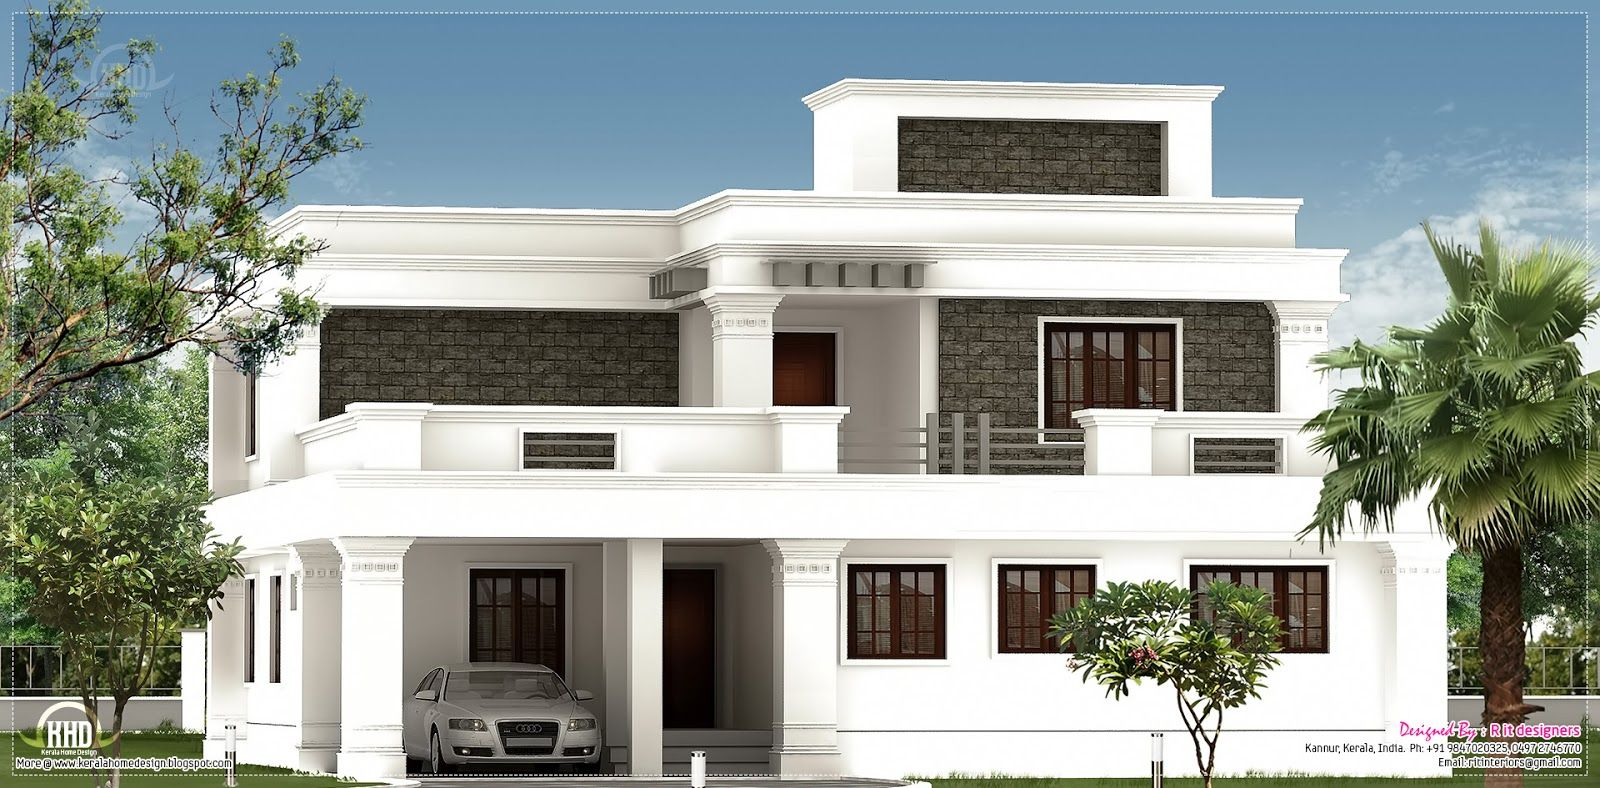 Flat roof homes designs flat roof villa exterior in 2400 for Home designs exterior styles